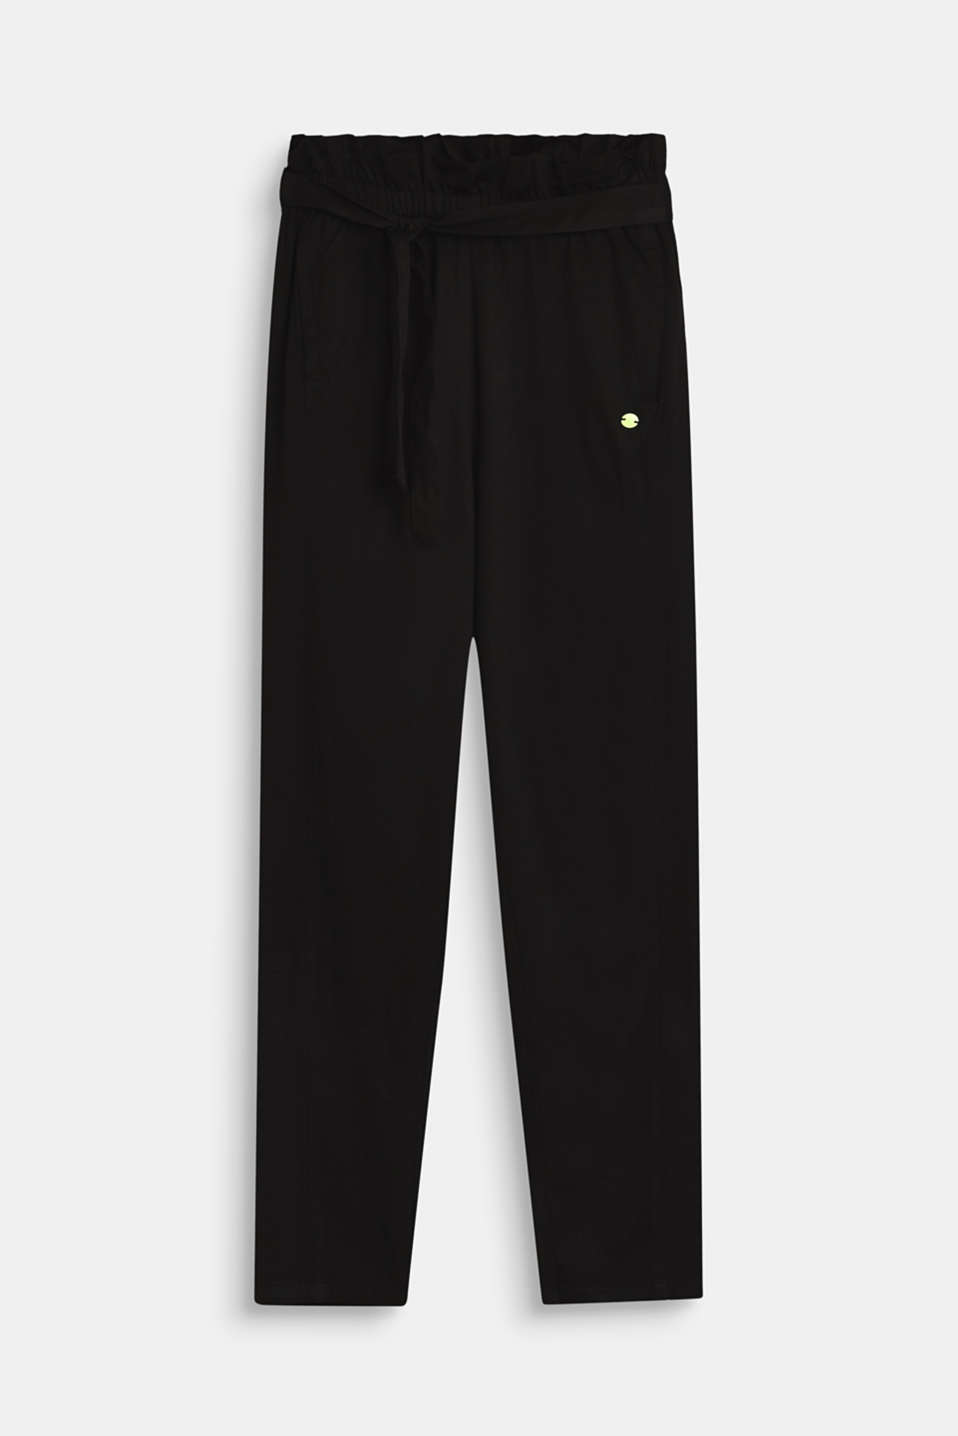 Esprit - Flowing woven trousers with a paperbag waistband